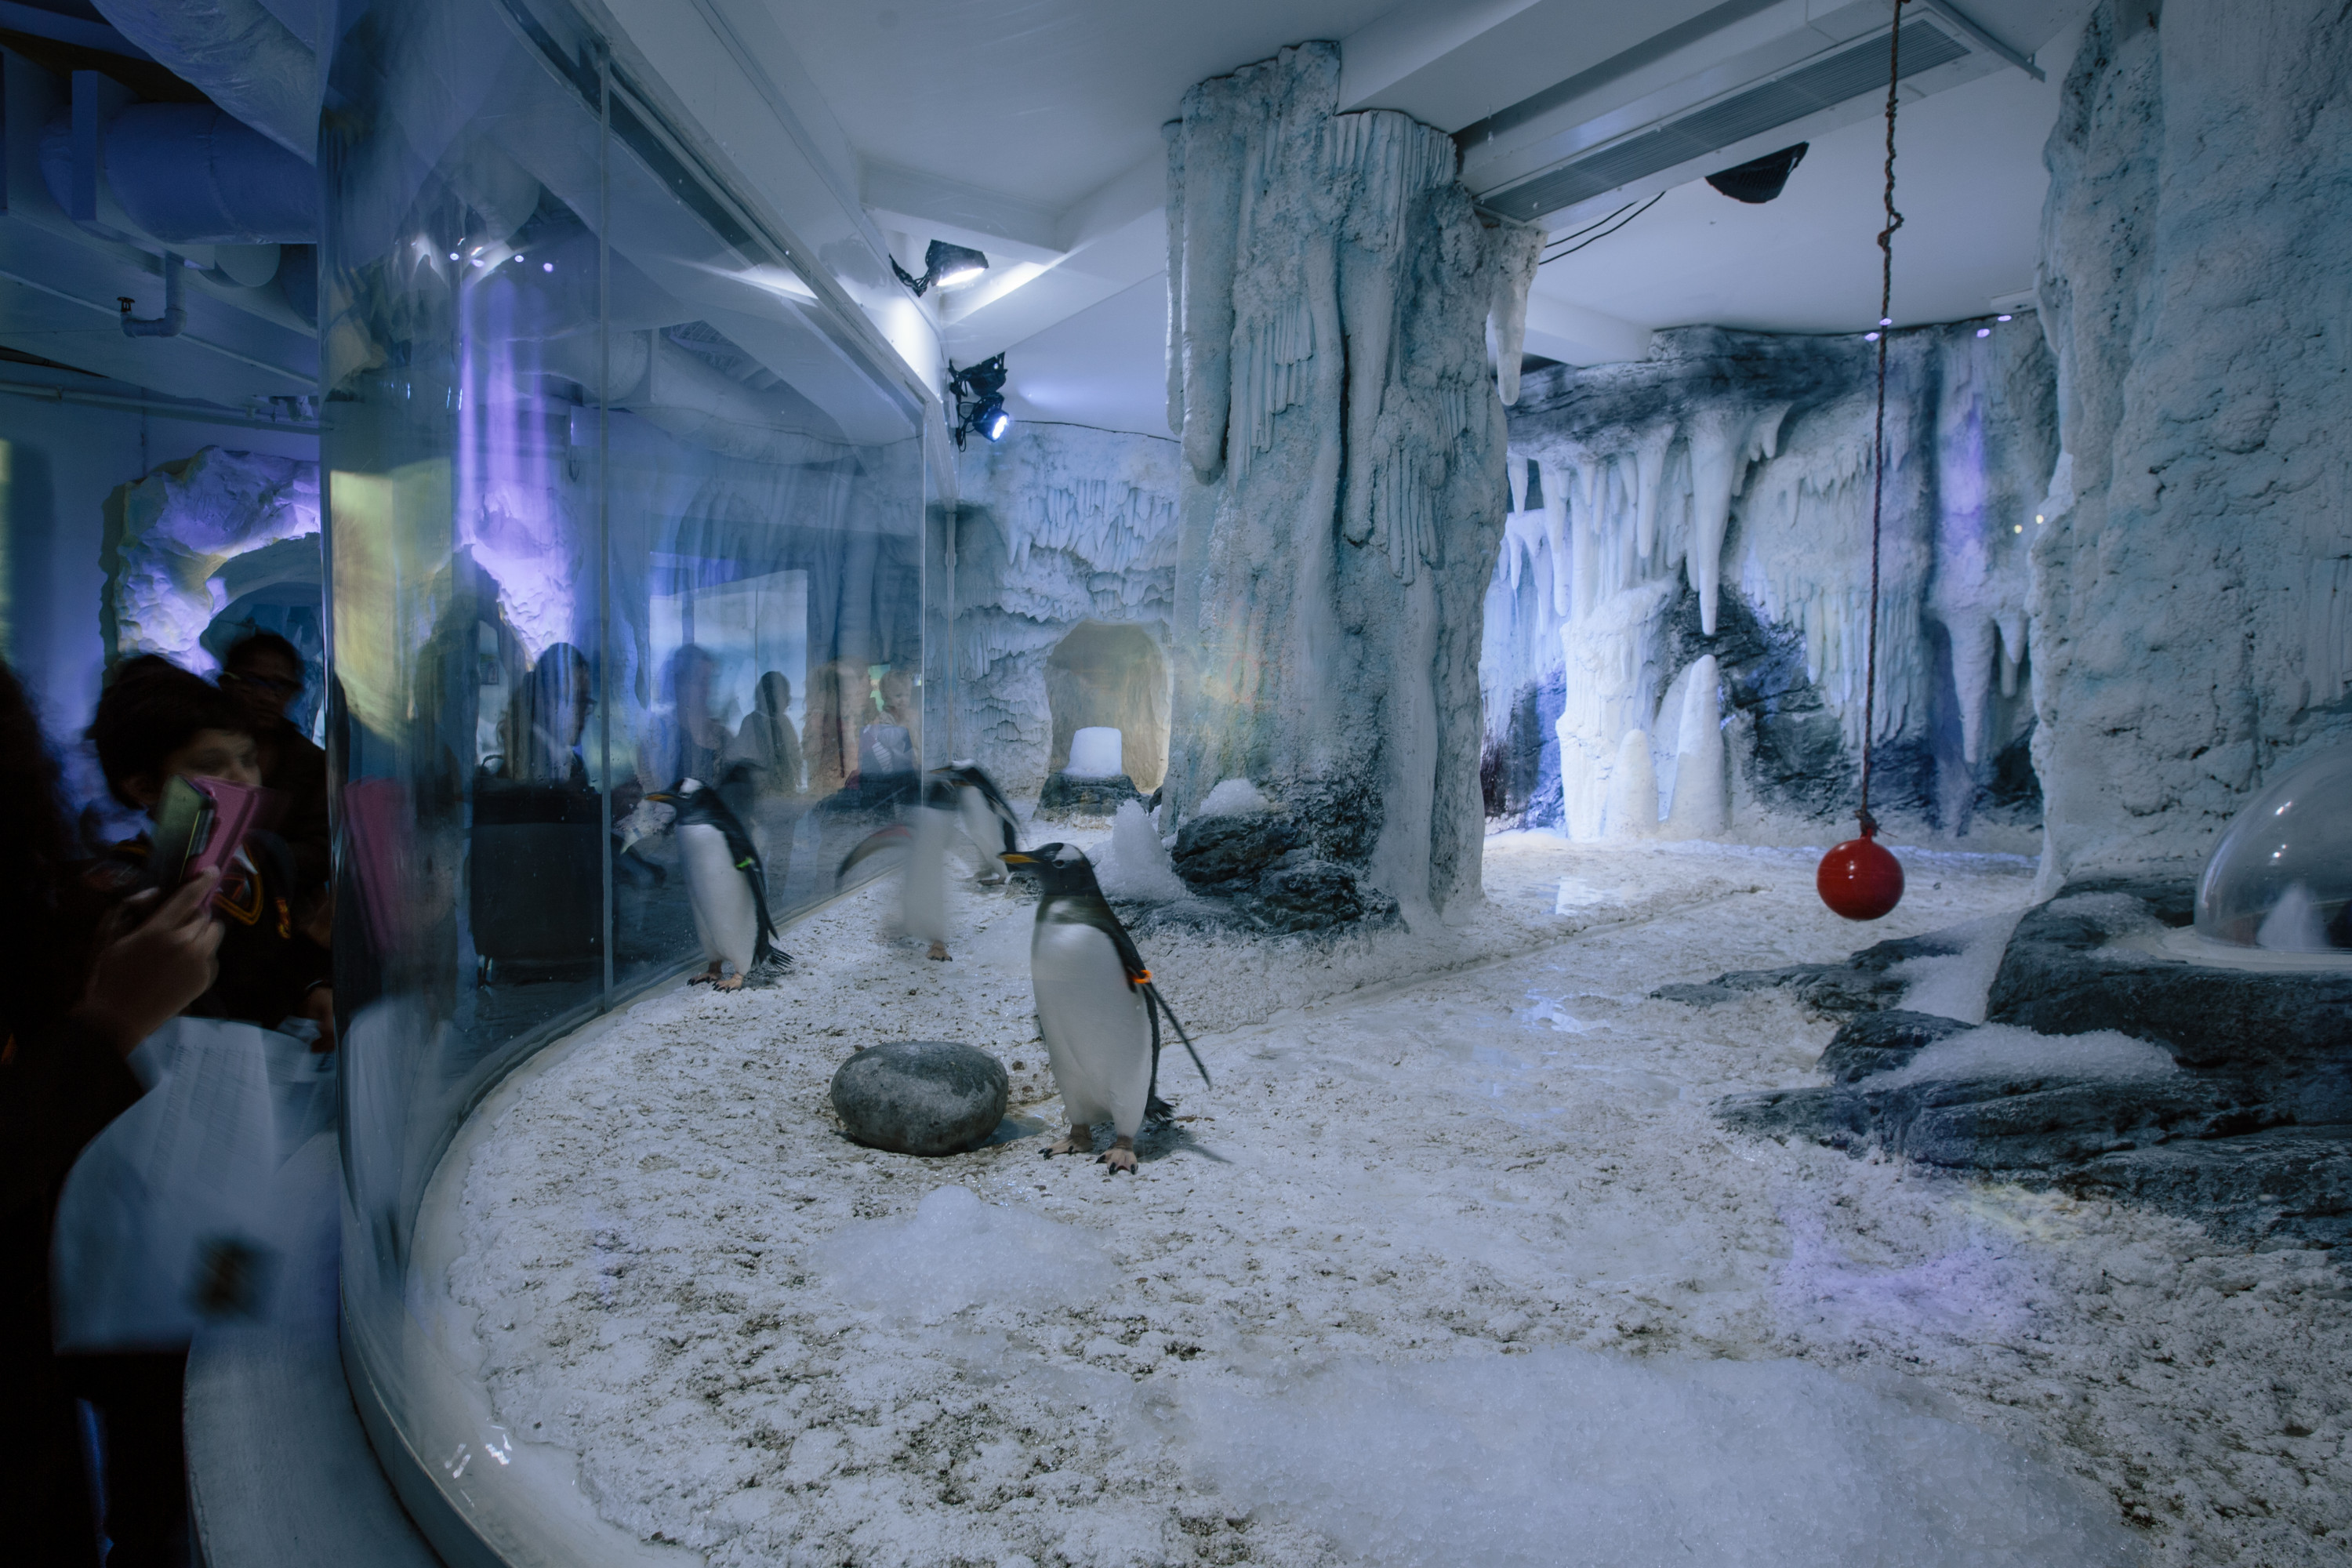 Sea Life London Aquarium relies on Cameo FLAT PRO series in Penguin Point